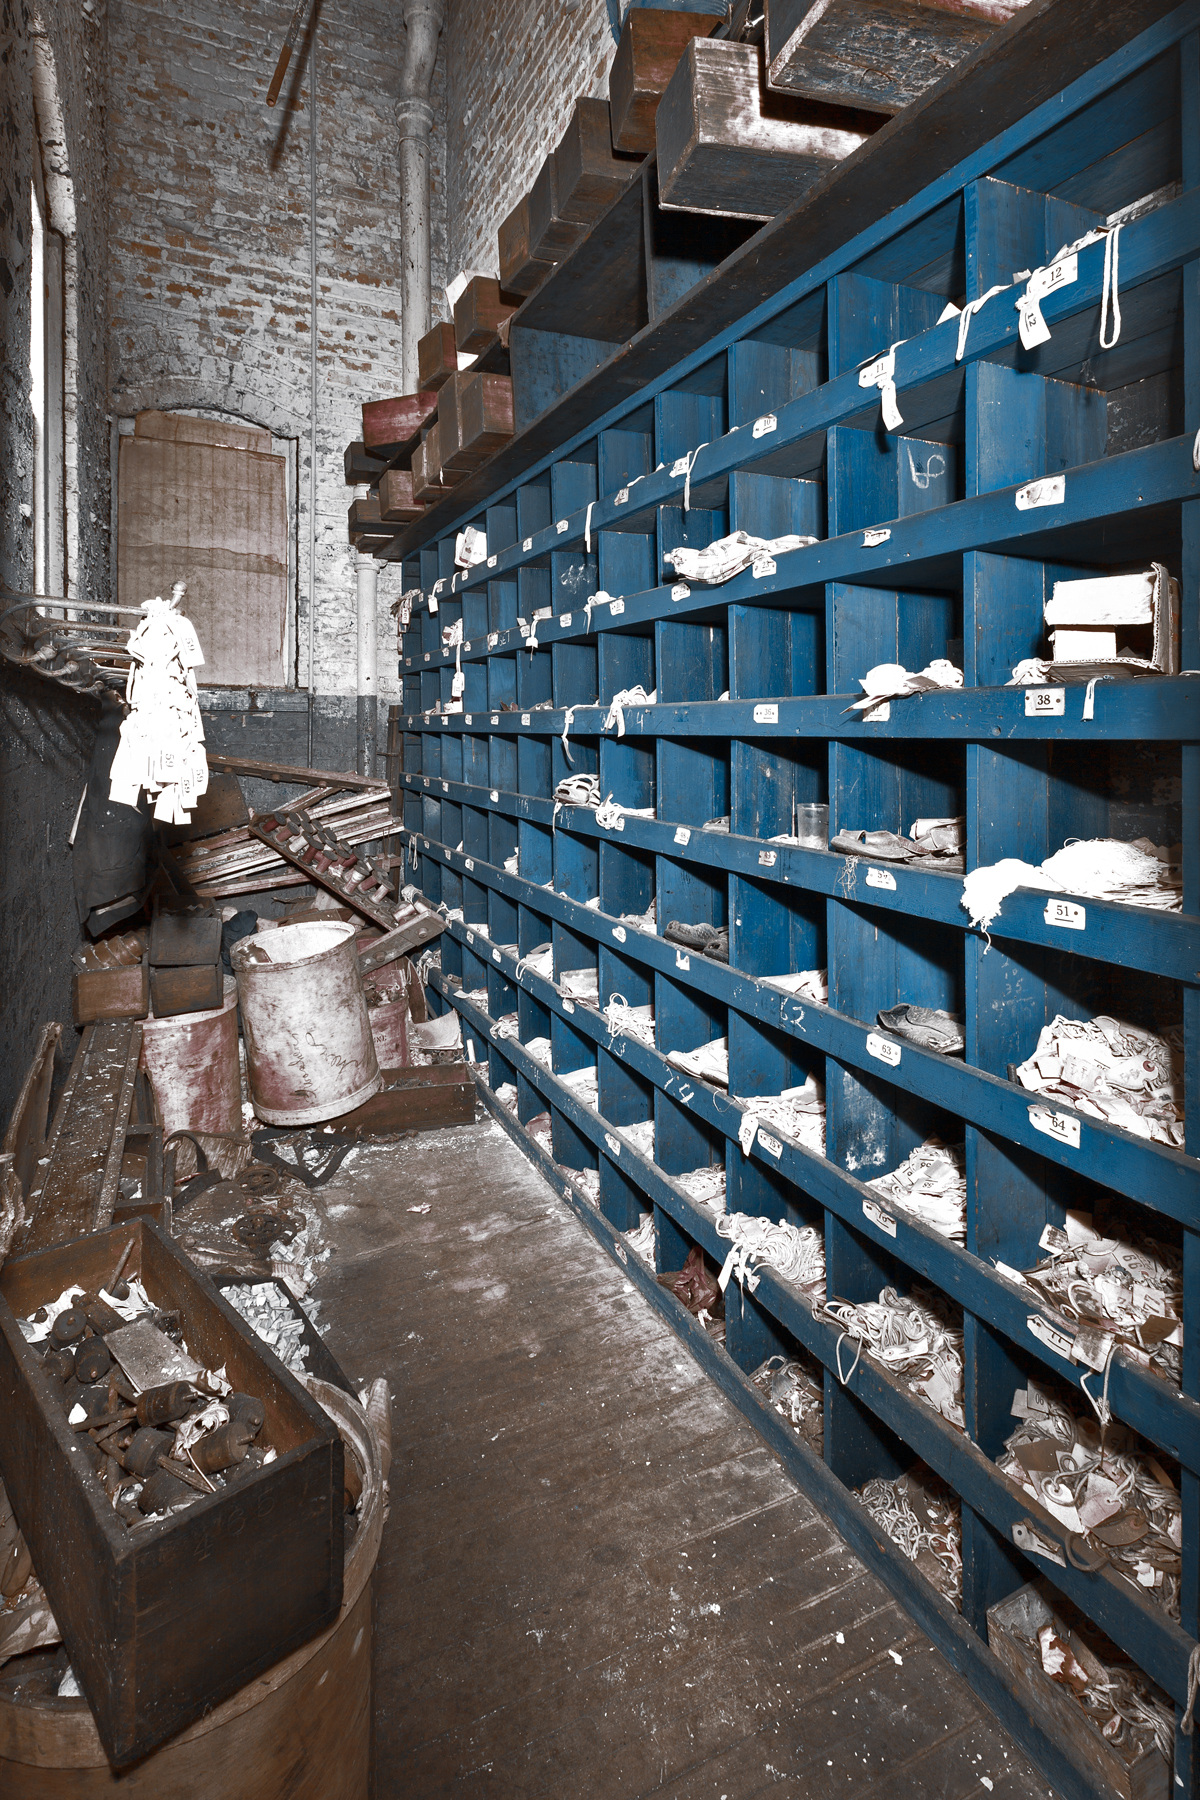 Abandoned Silk Mill Storage Room, Abandoned, Object, Shades, Shade, HQ Photo